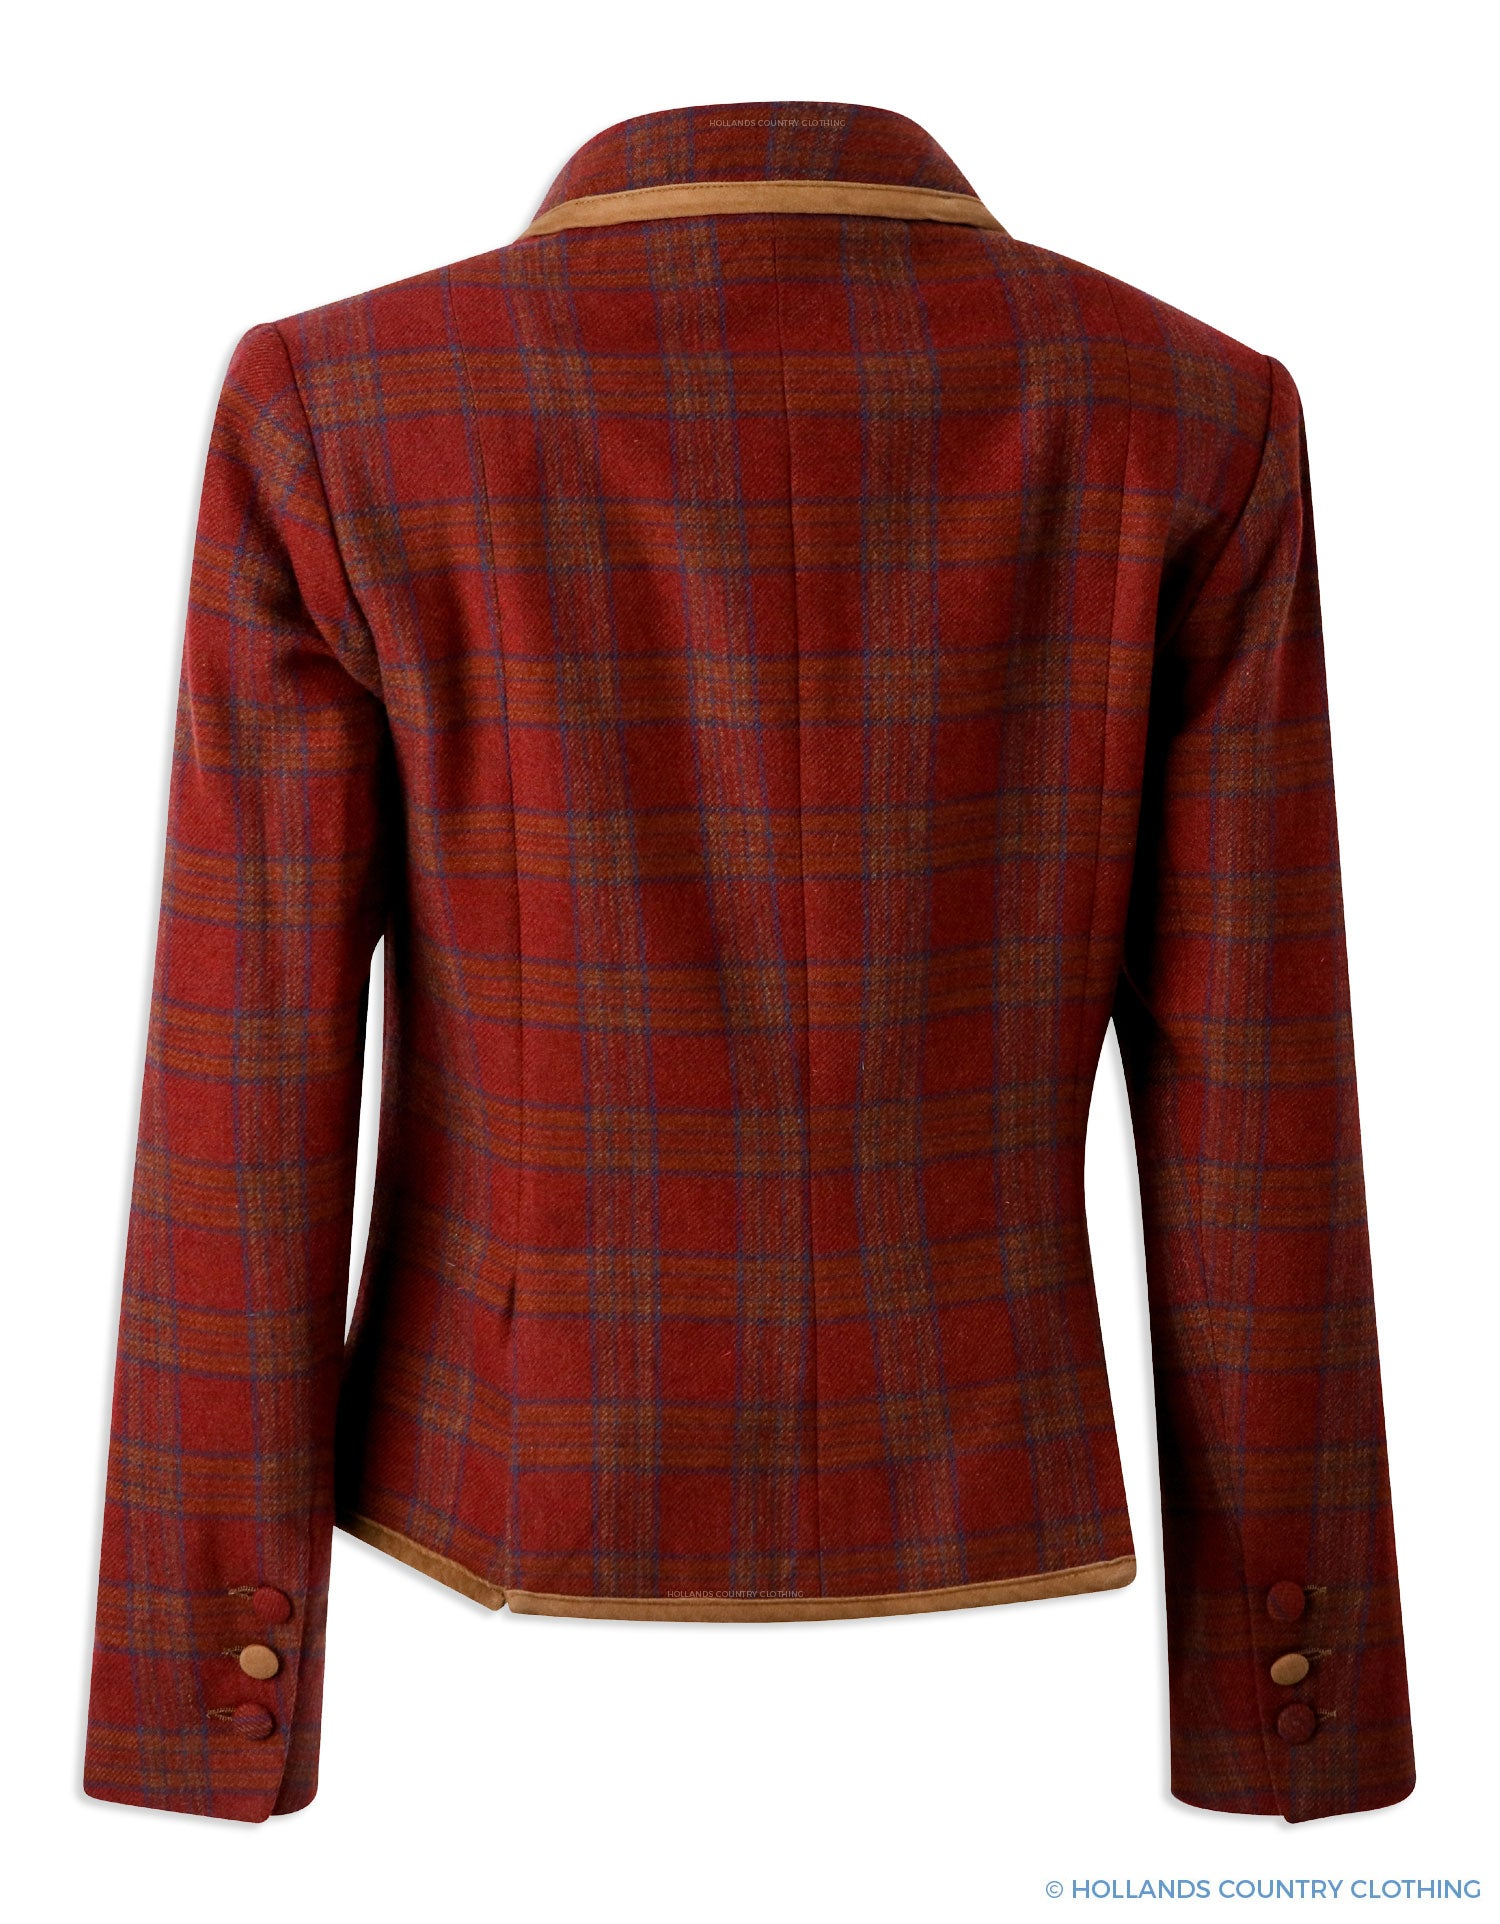 Rear view Brown Tartan tweed jacket